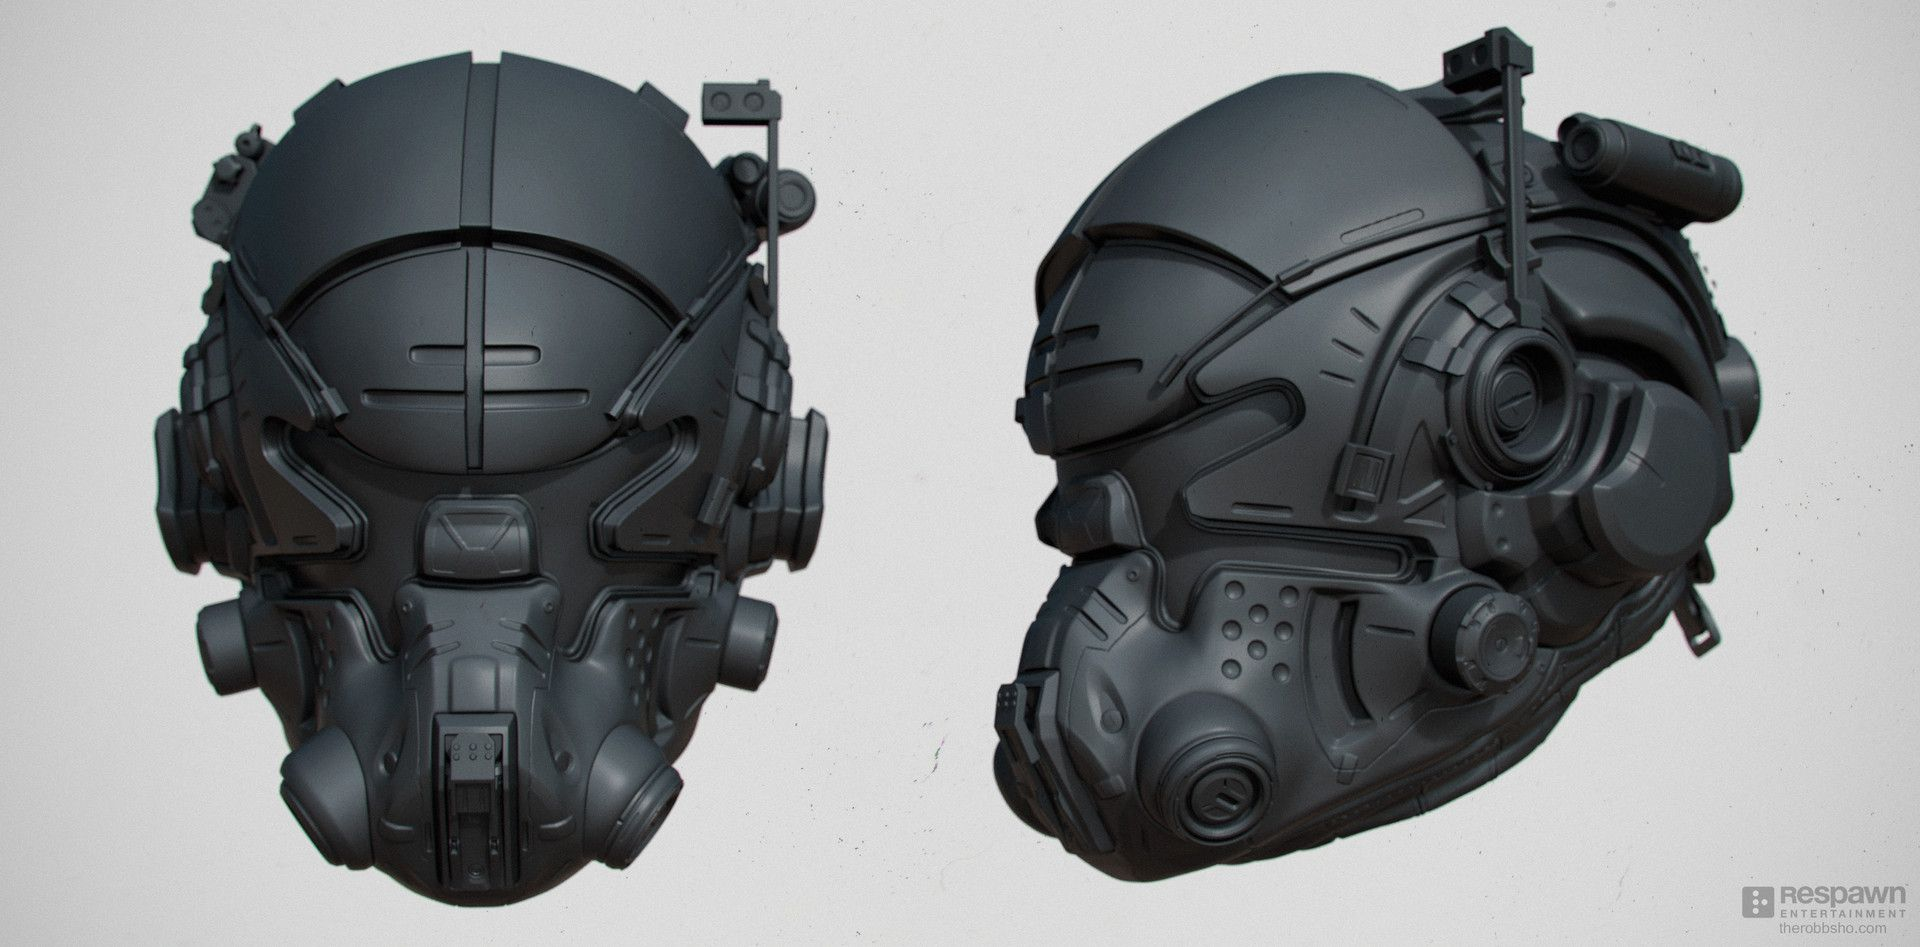 the high poly design/baking mesh for the principal ...